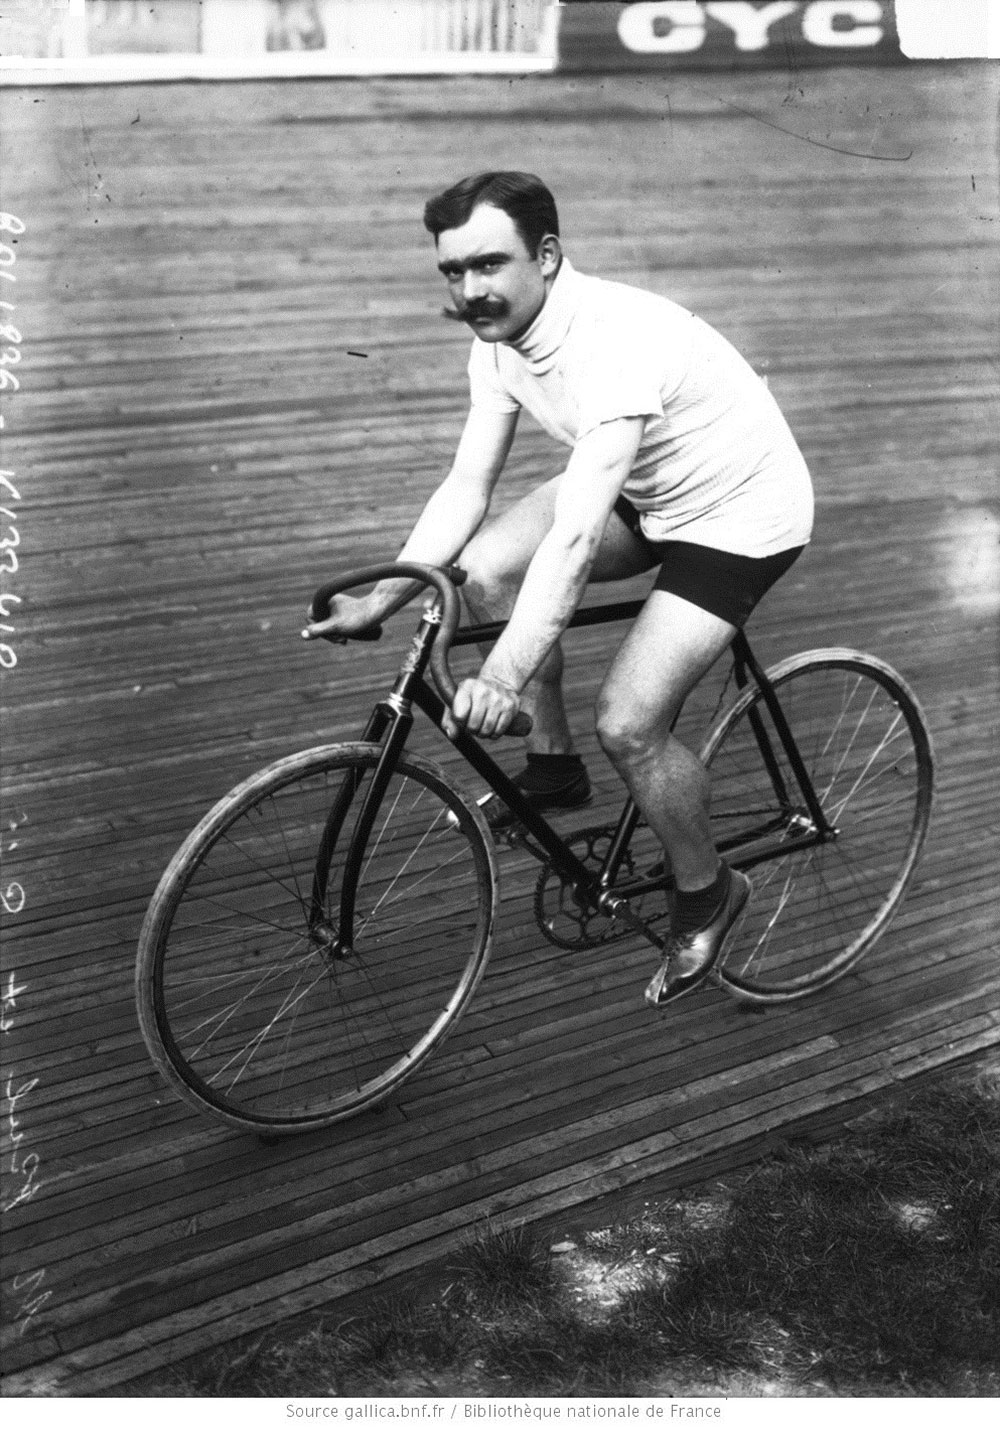 Trousselier al Tour de France 1905